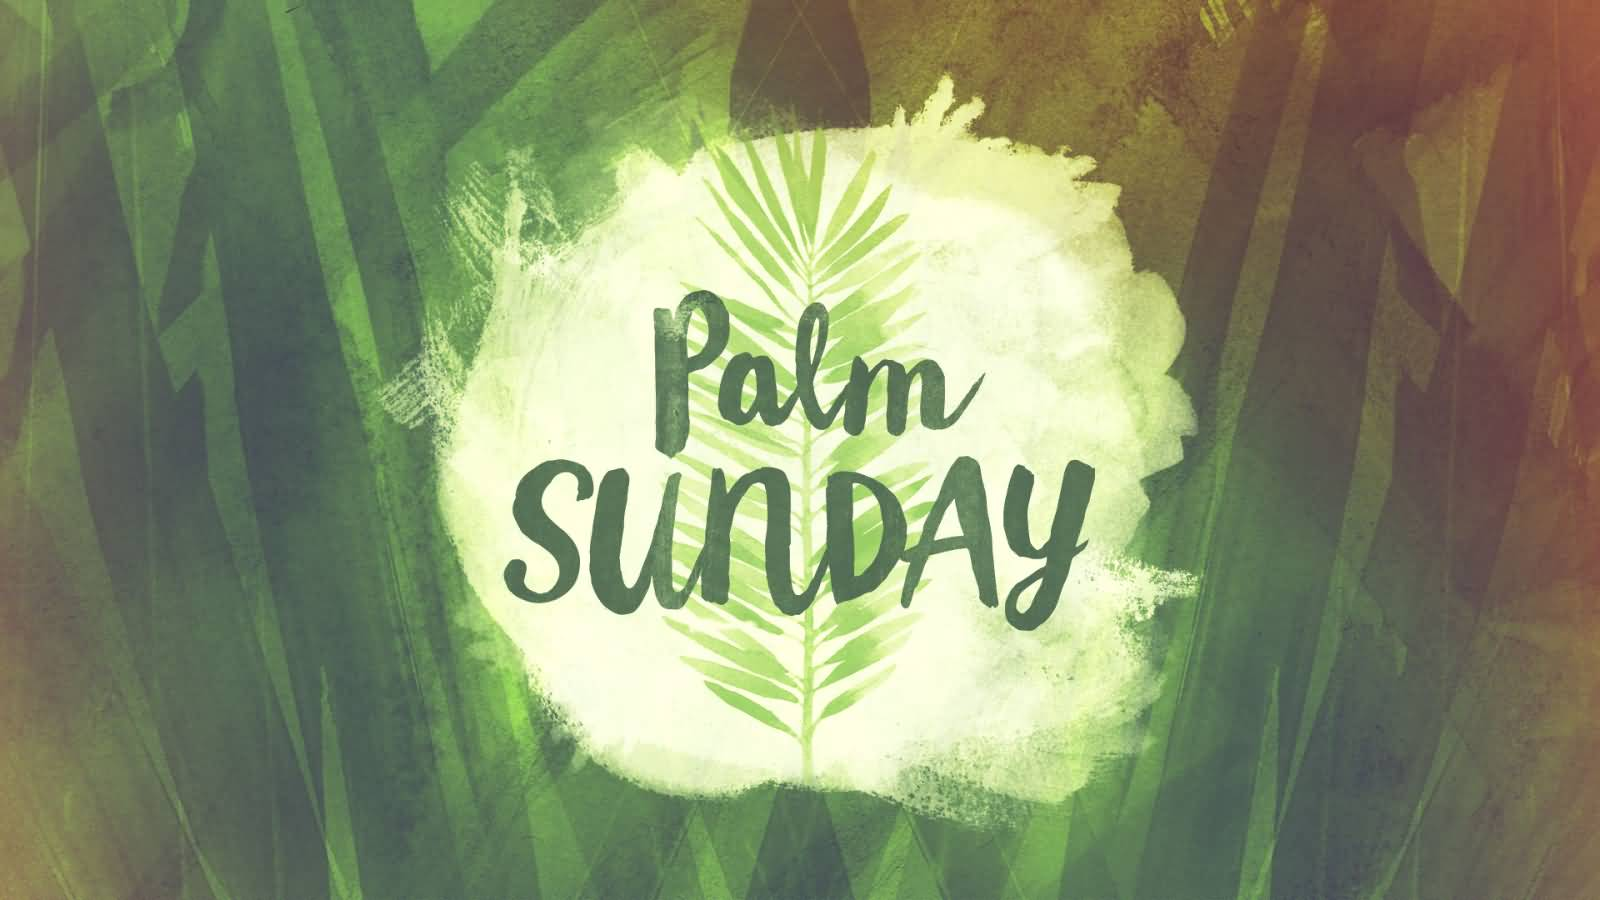 Palm Sunday Wishes Picture For Facebook